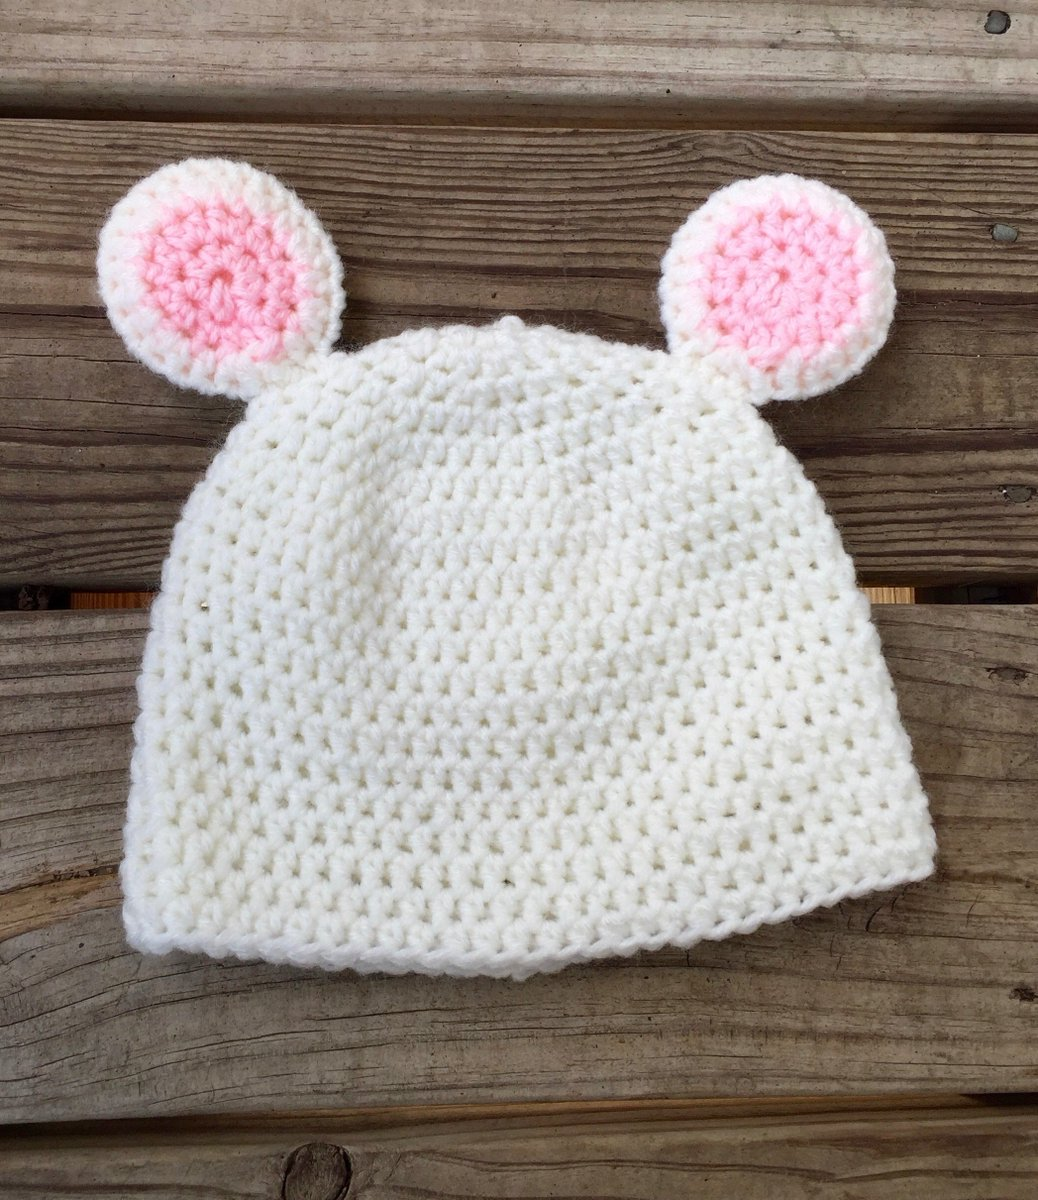 e3a71538495 babybearhat hashtag on Twitter